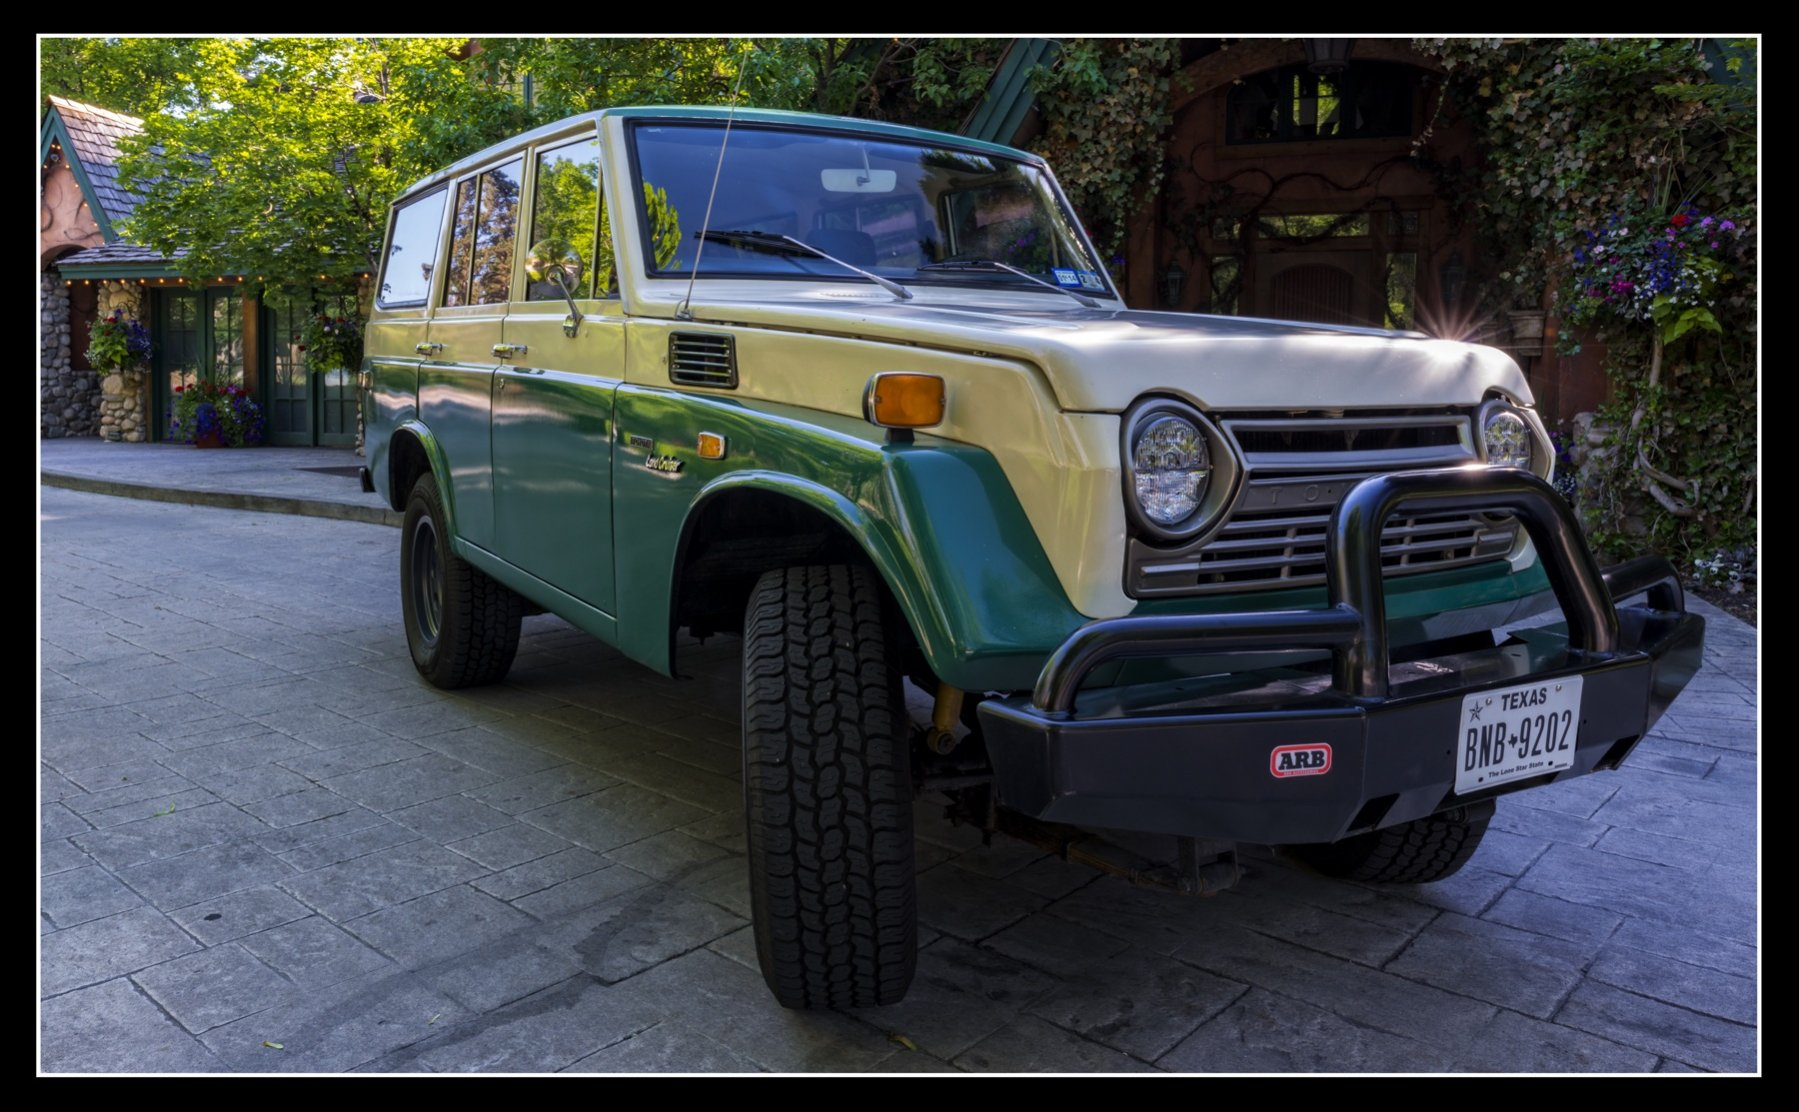 Now On Ebay V8 Powered 1973 Toyota Fj55 Land Cruiser With A Low Front Differ